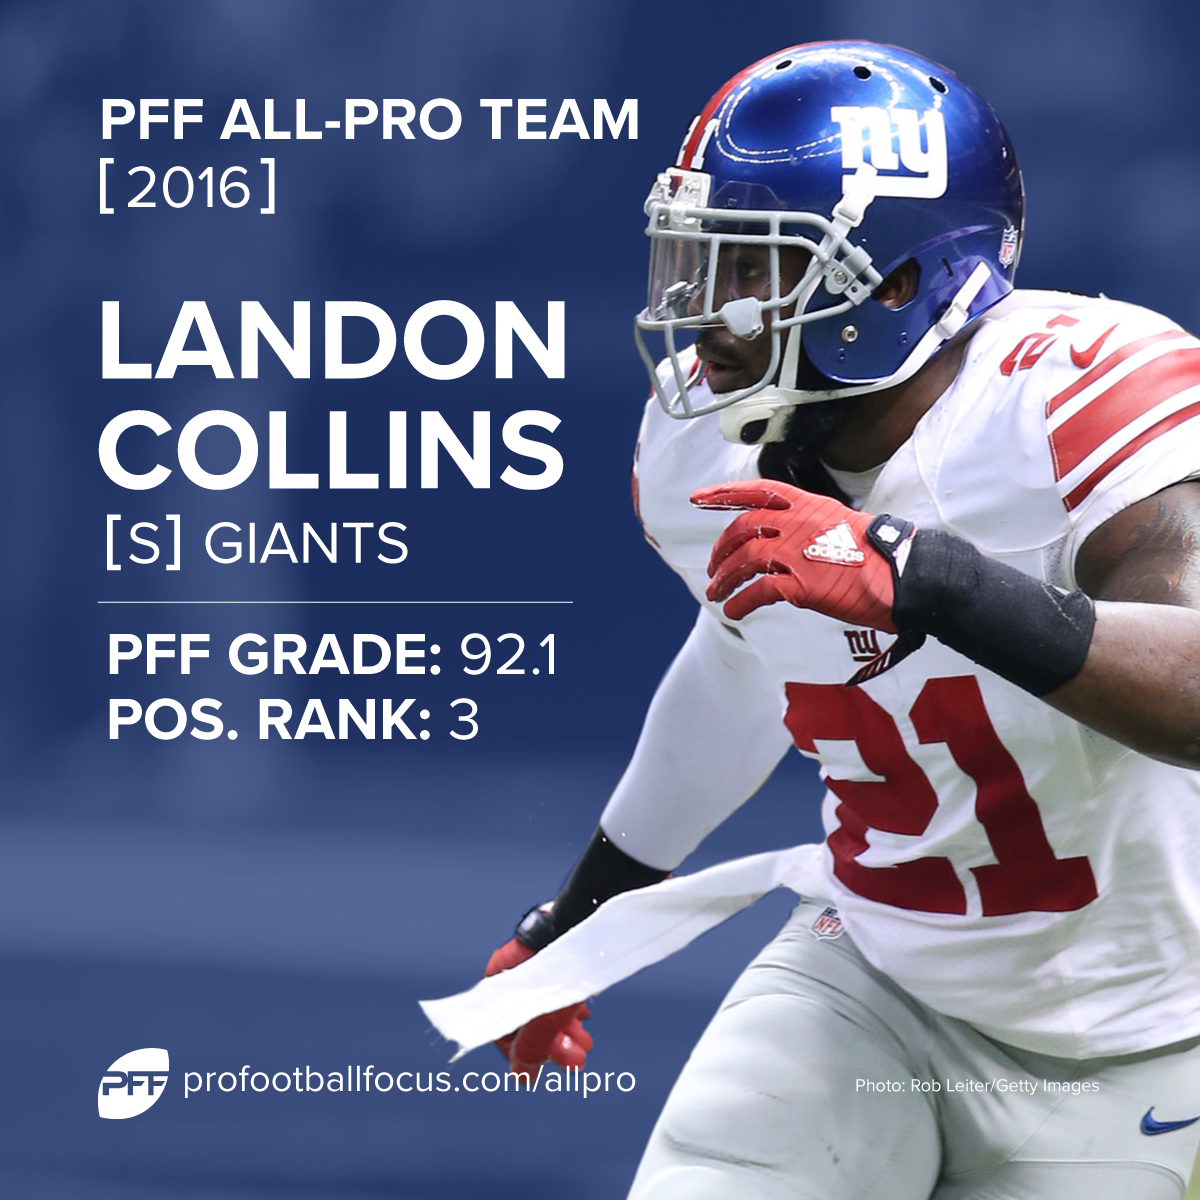 Landon Collins PFF All-Pro